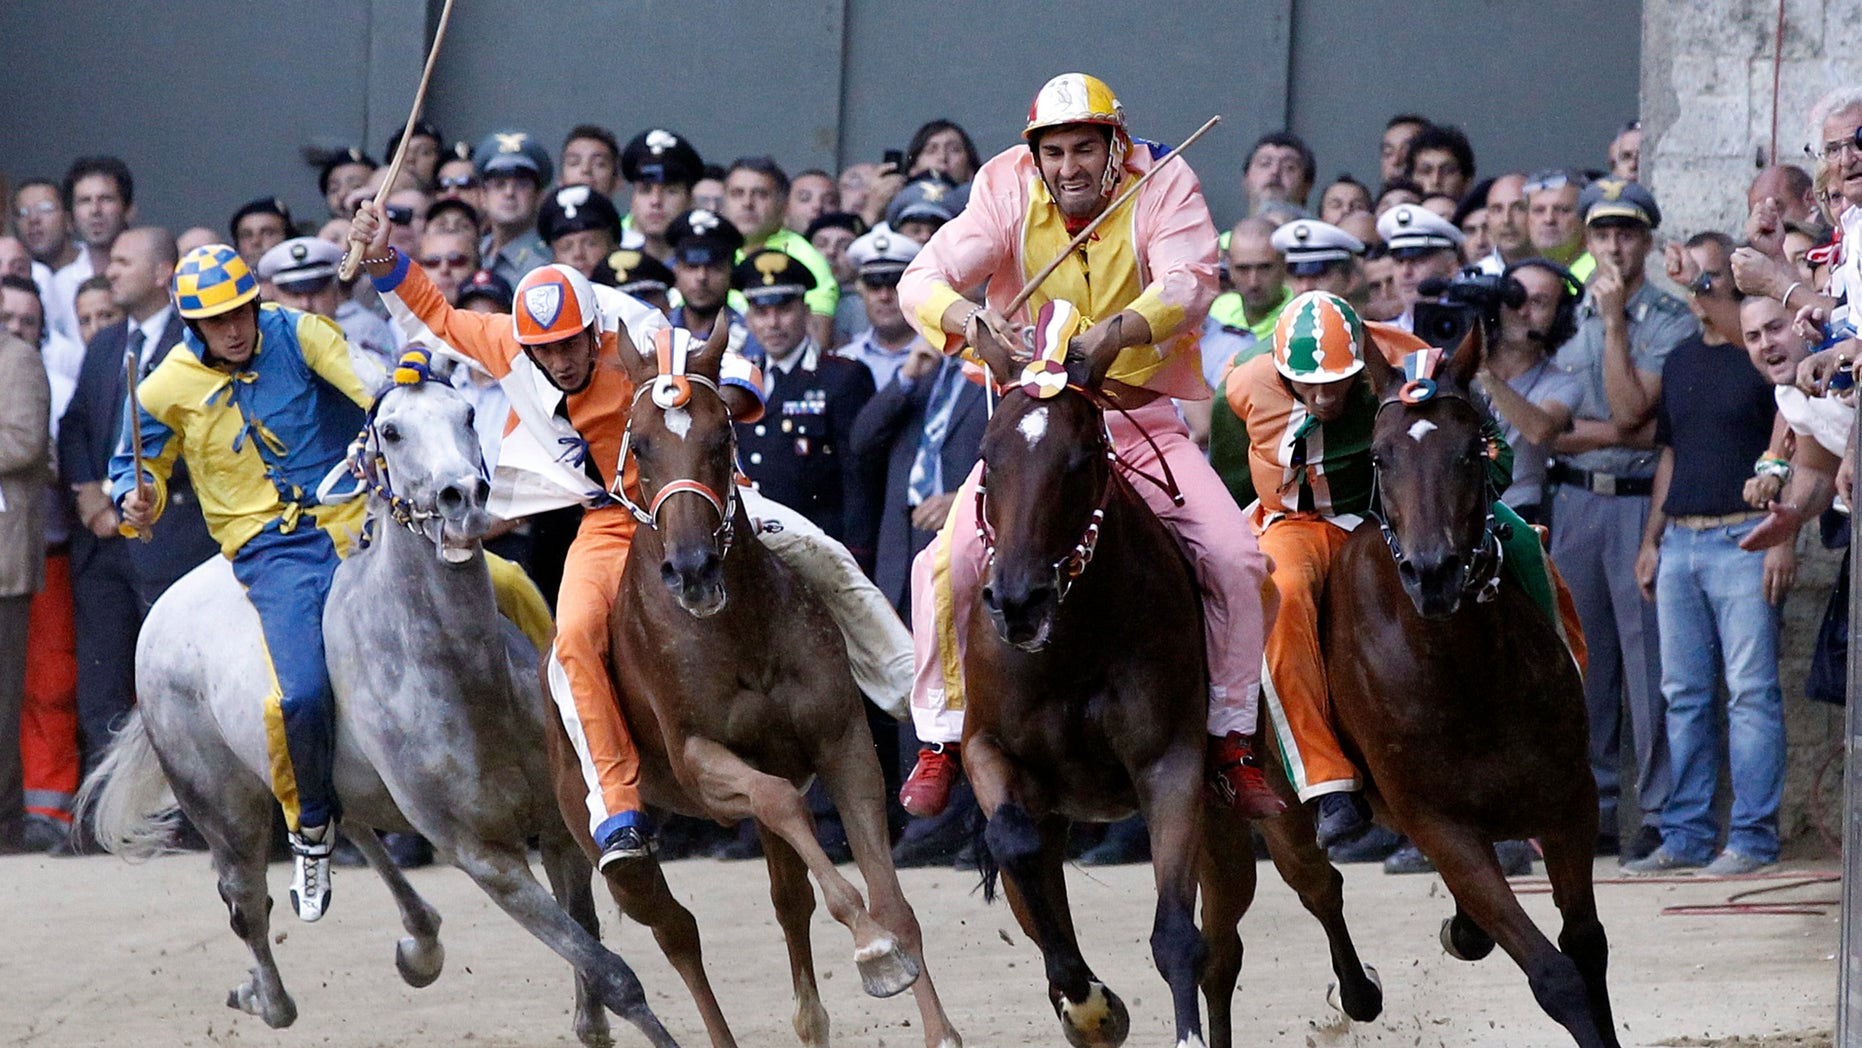 Aug. 16, 2012: The Montone (Ram) neighborhood rider Jonathan Bartoletti, second from right, leads the race on his way to win the Madonna dell'Assunta (Virgin of the Assumption) ancient Palio, the famous break-neck bareback horse race run in Siena's main square, in Siena , Italy.